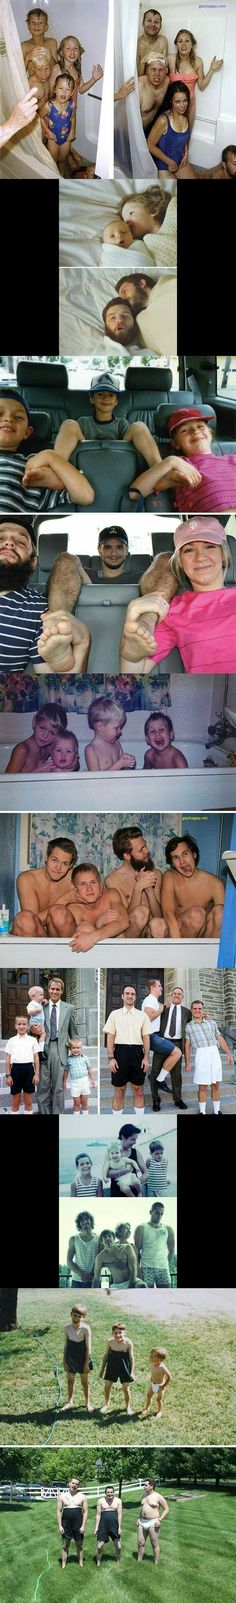 Top 14 Funniest Pictures Of Childhood vs. Adulthood